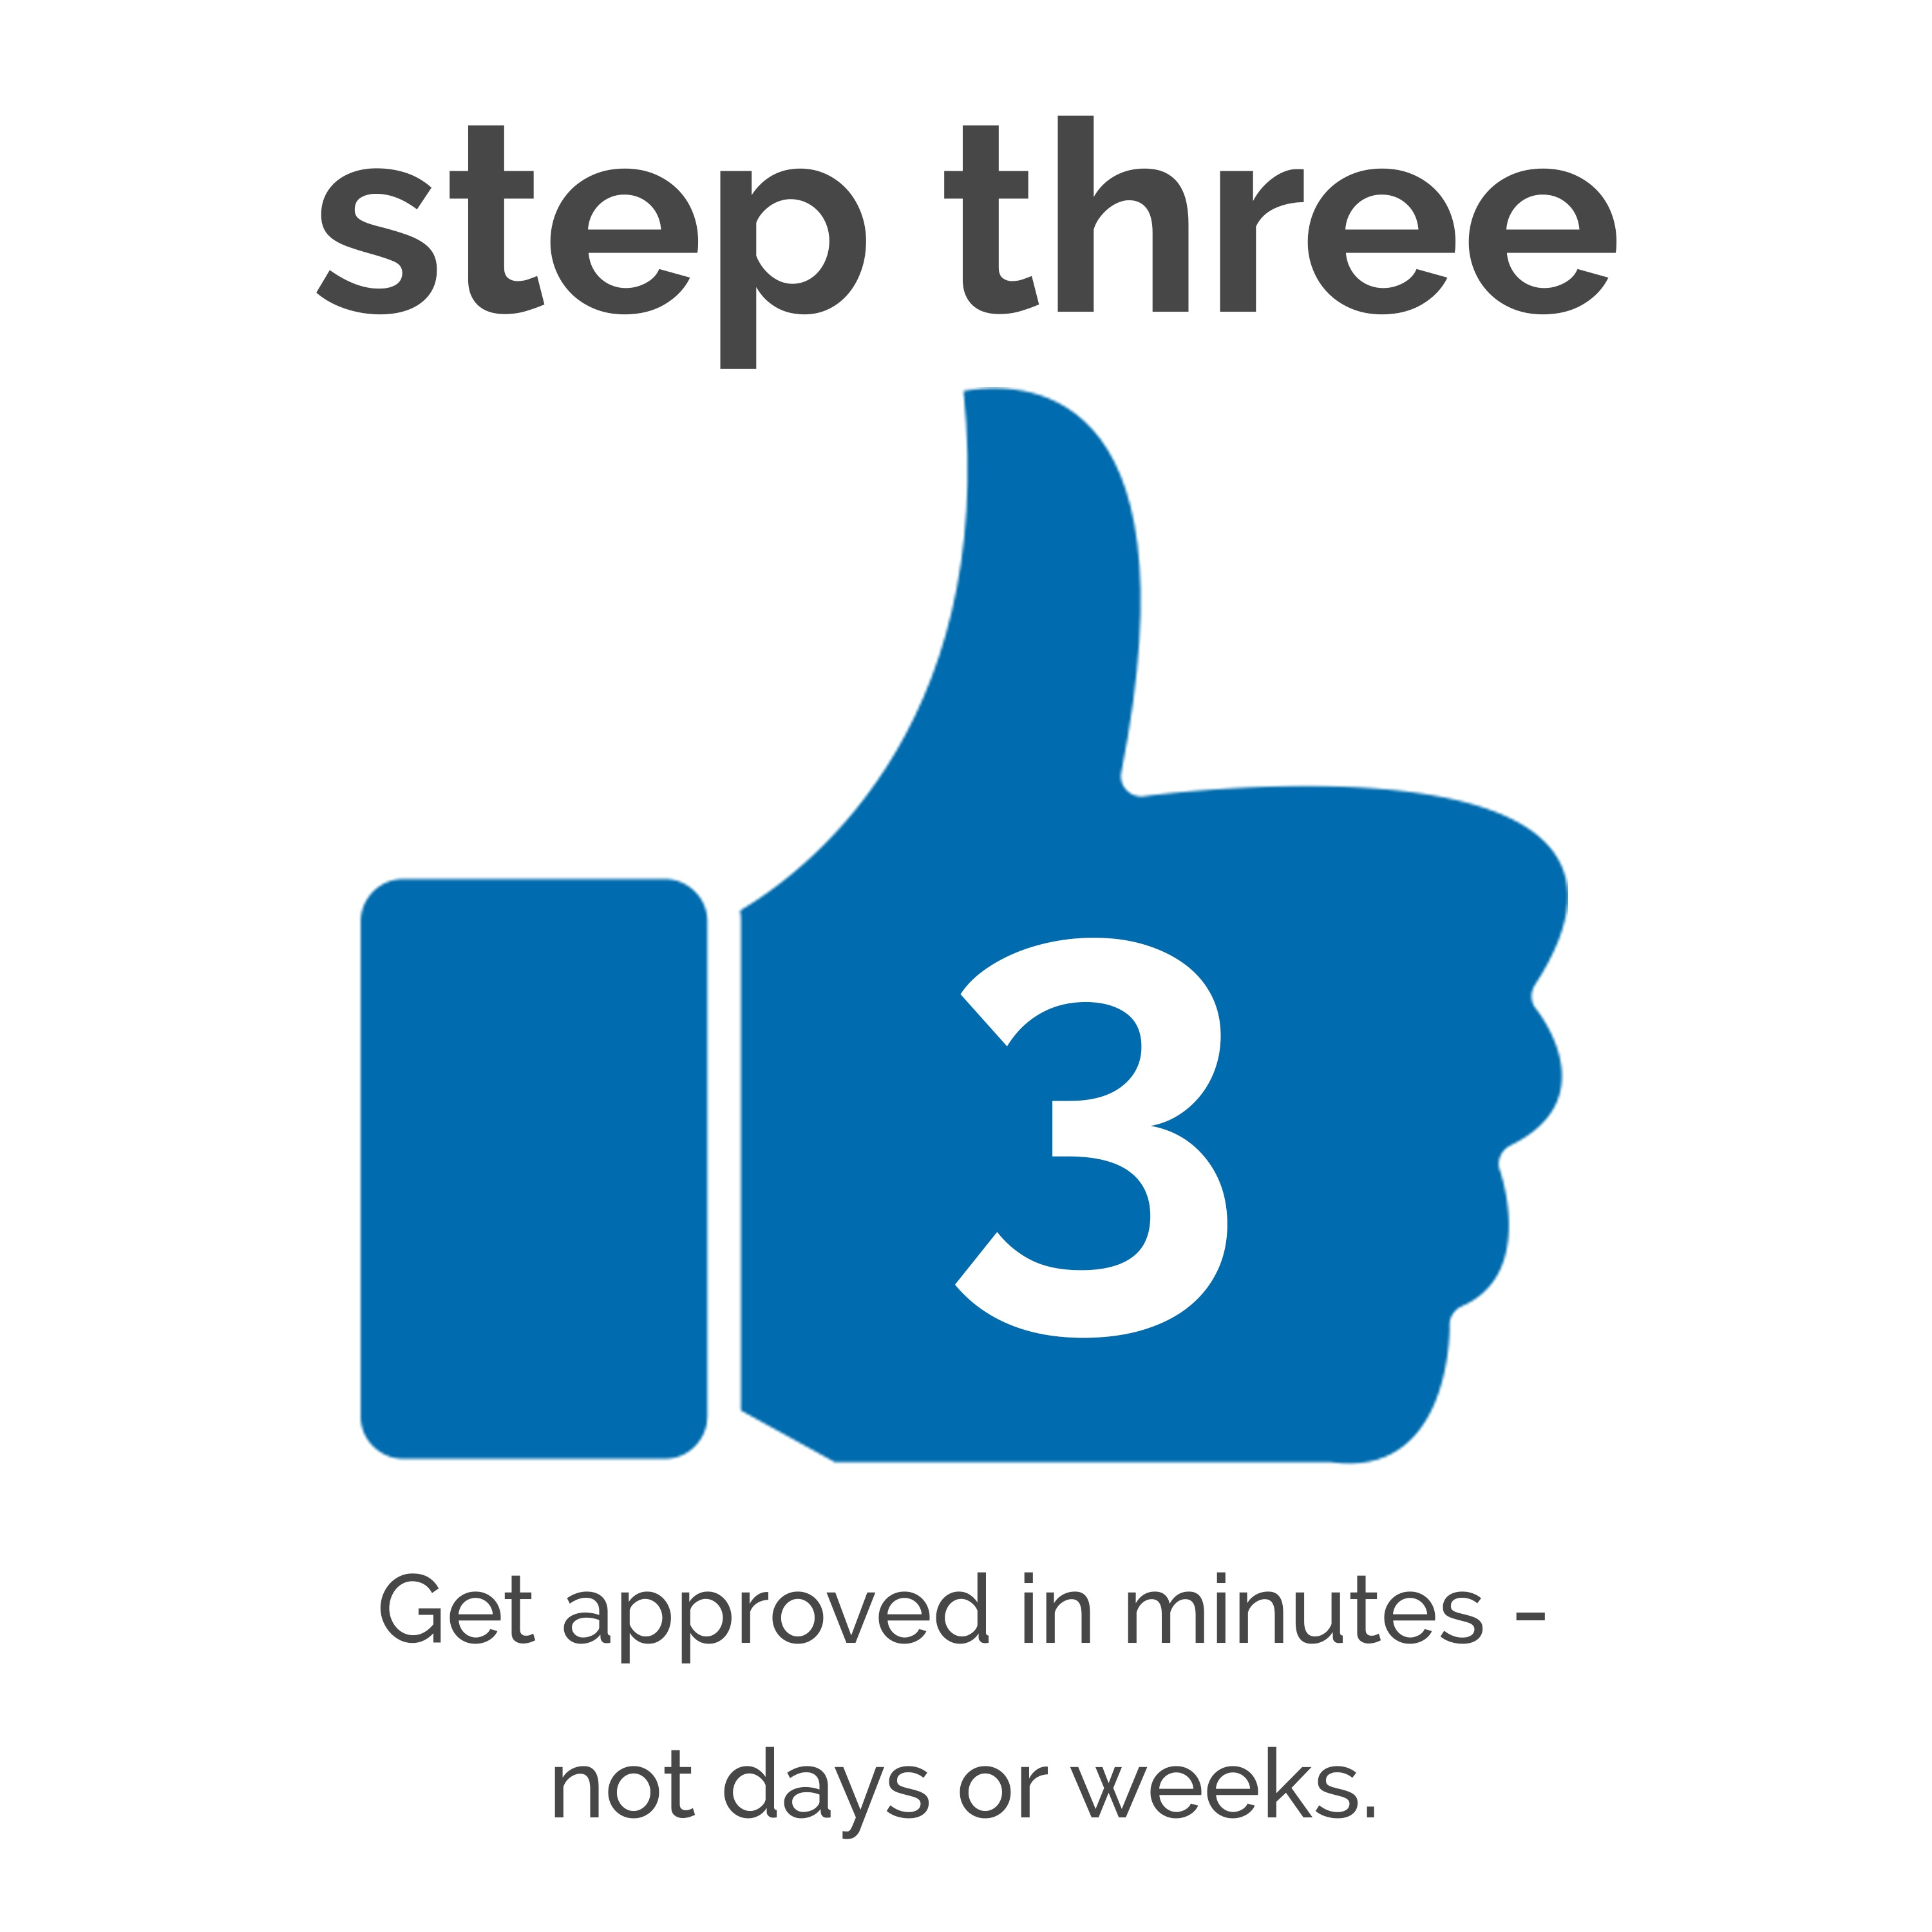 Step three- Get approved in minutes- not days or weeks.